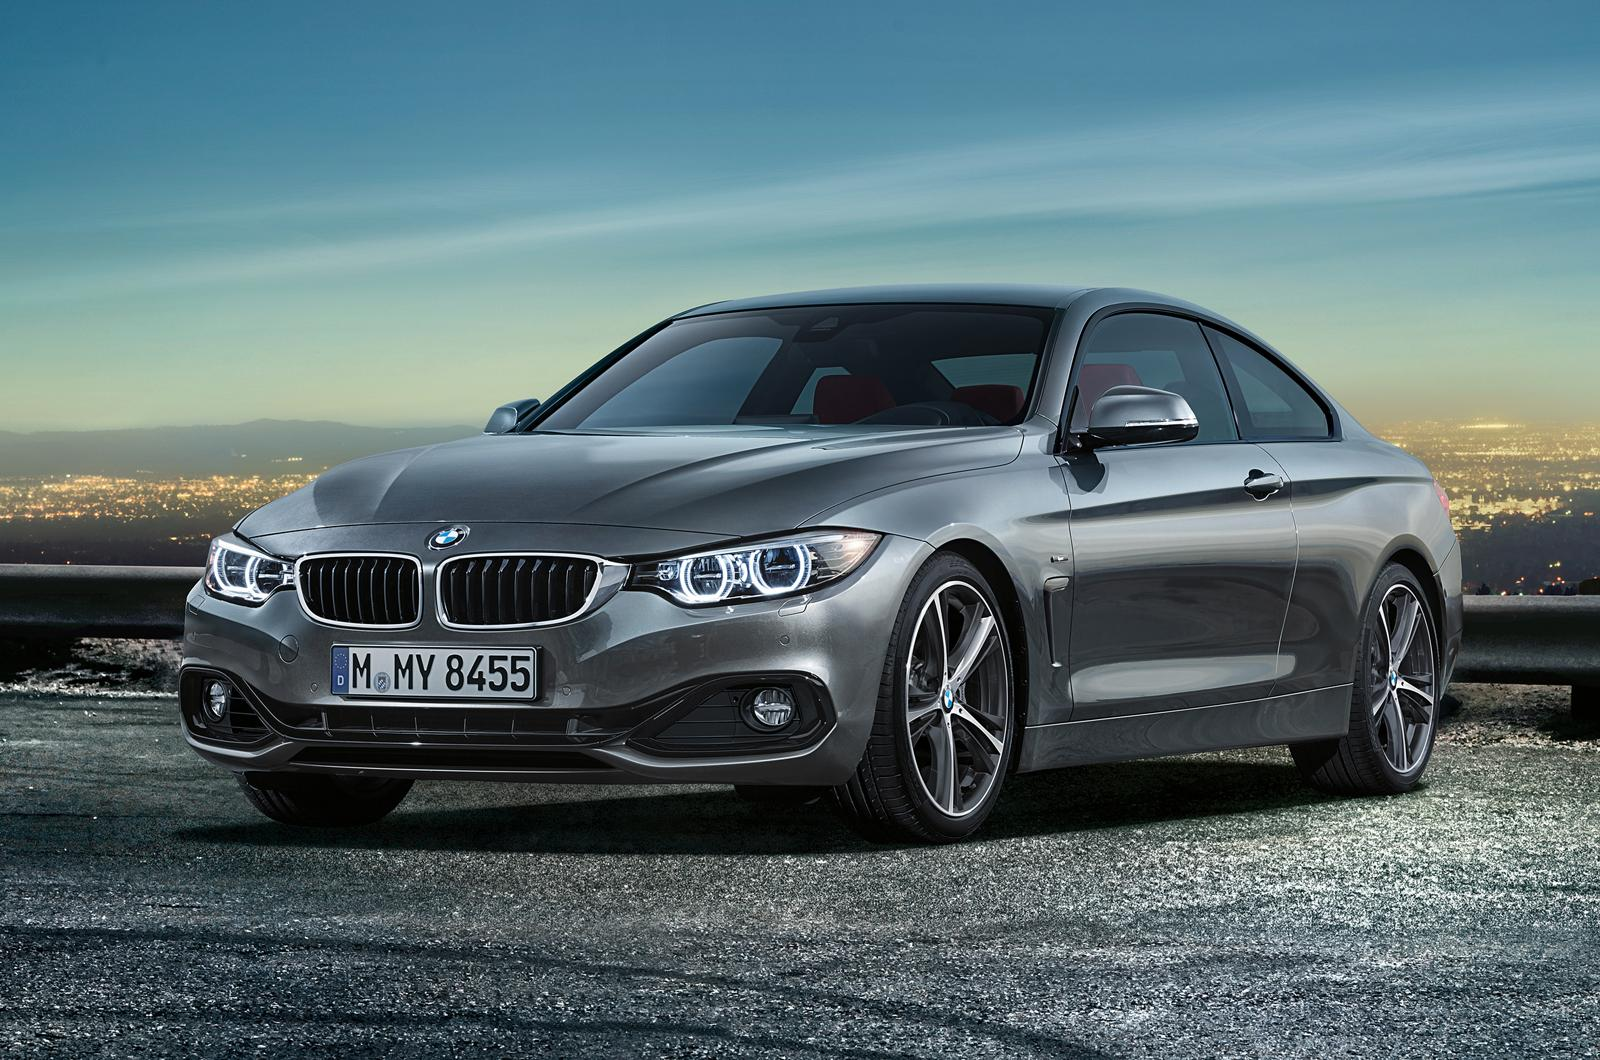 bmw 4 series revealed ahead of frankfurt gtspirit. Black Bedroom Furniture Sets. Home Design Ideas